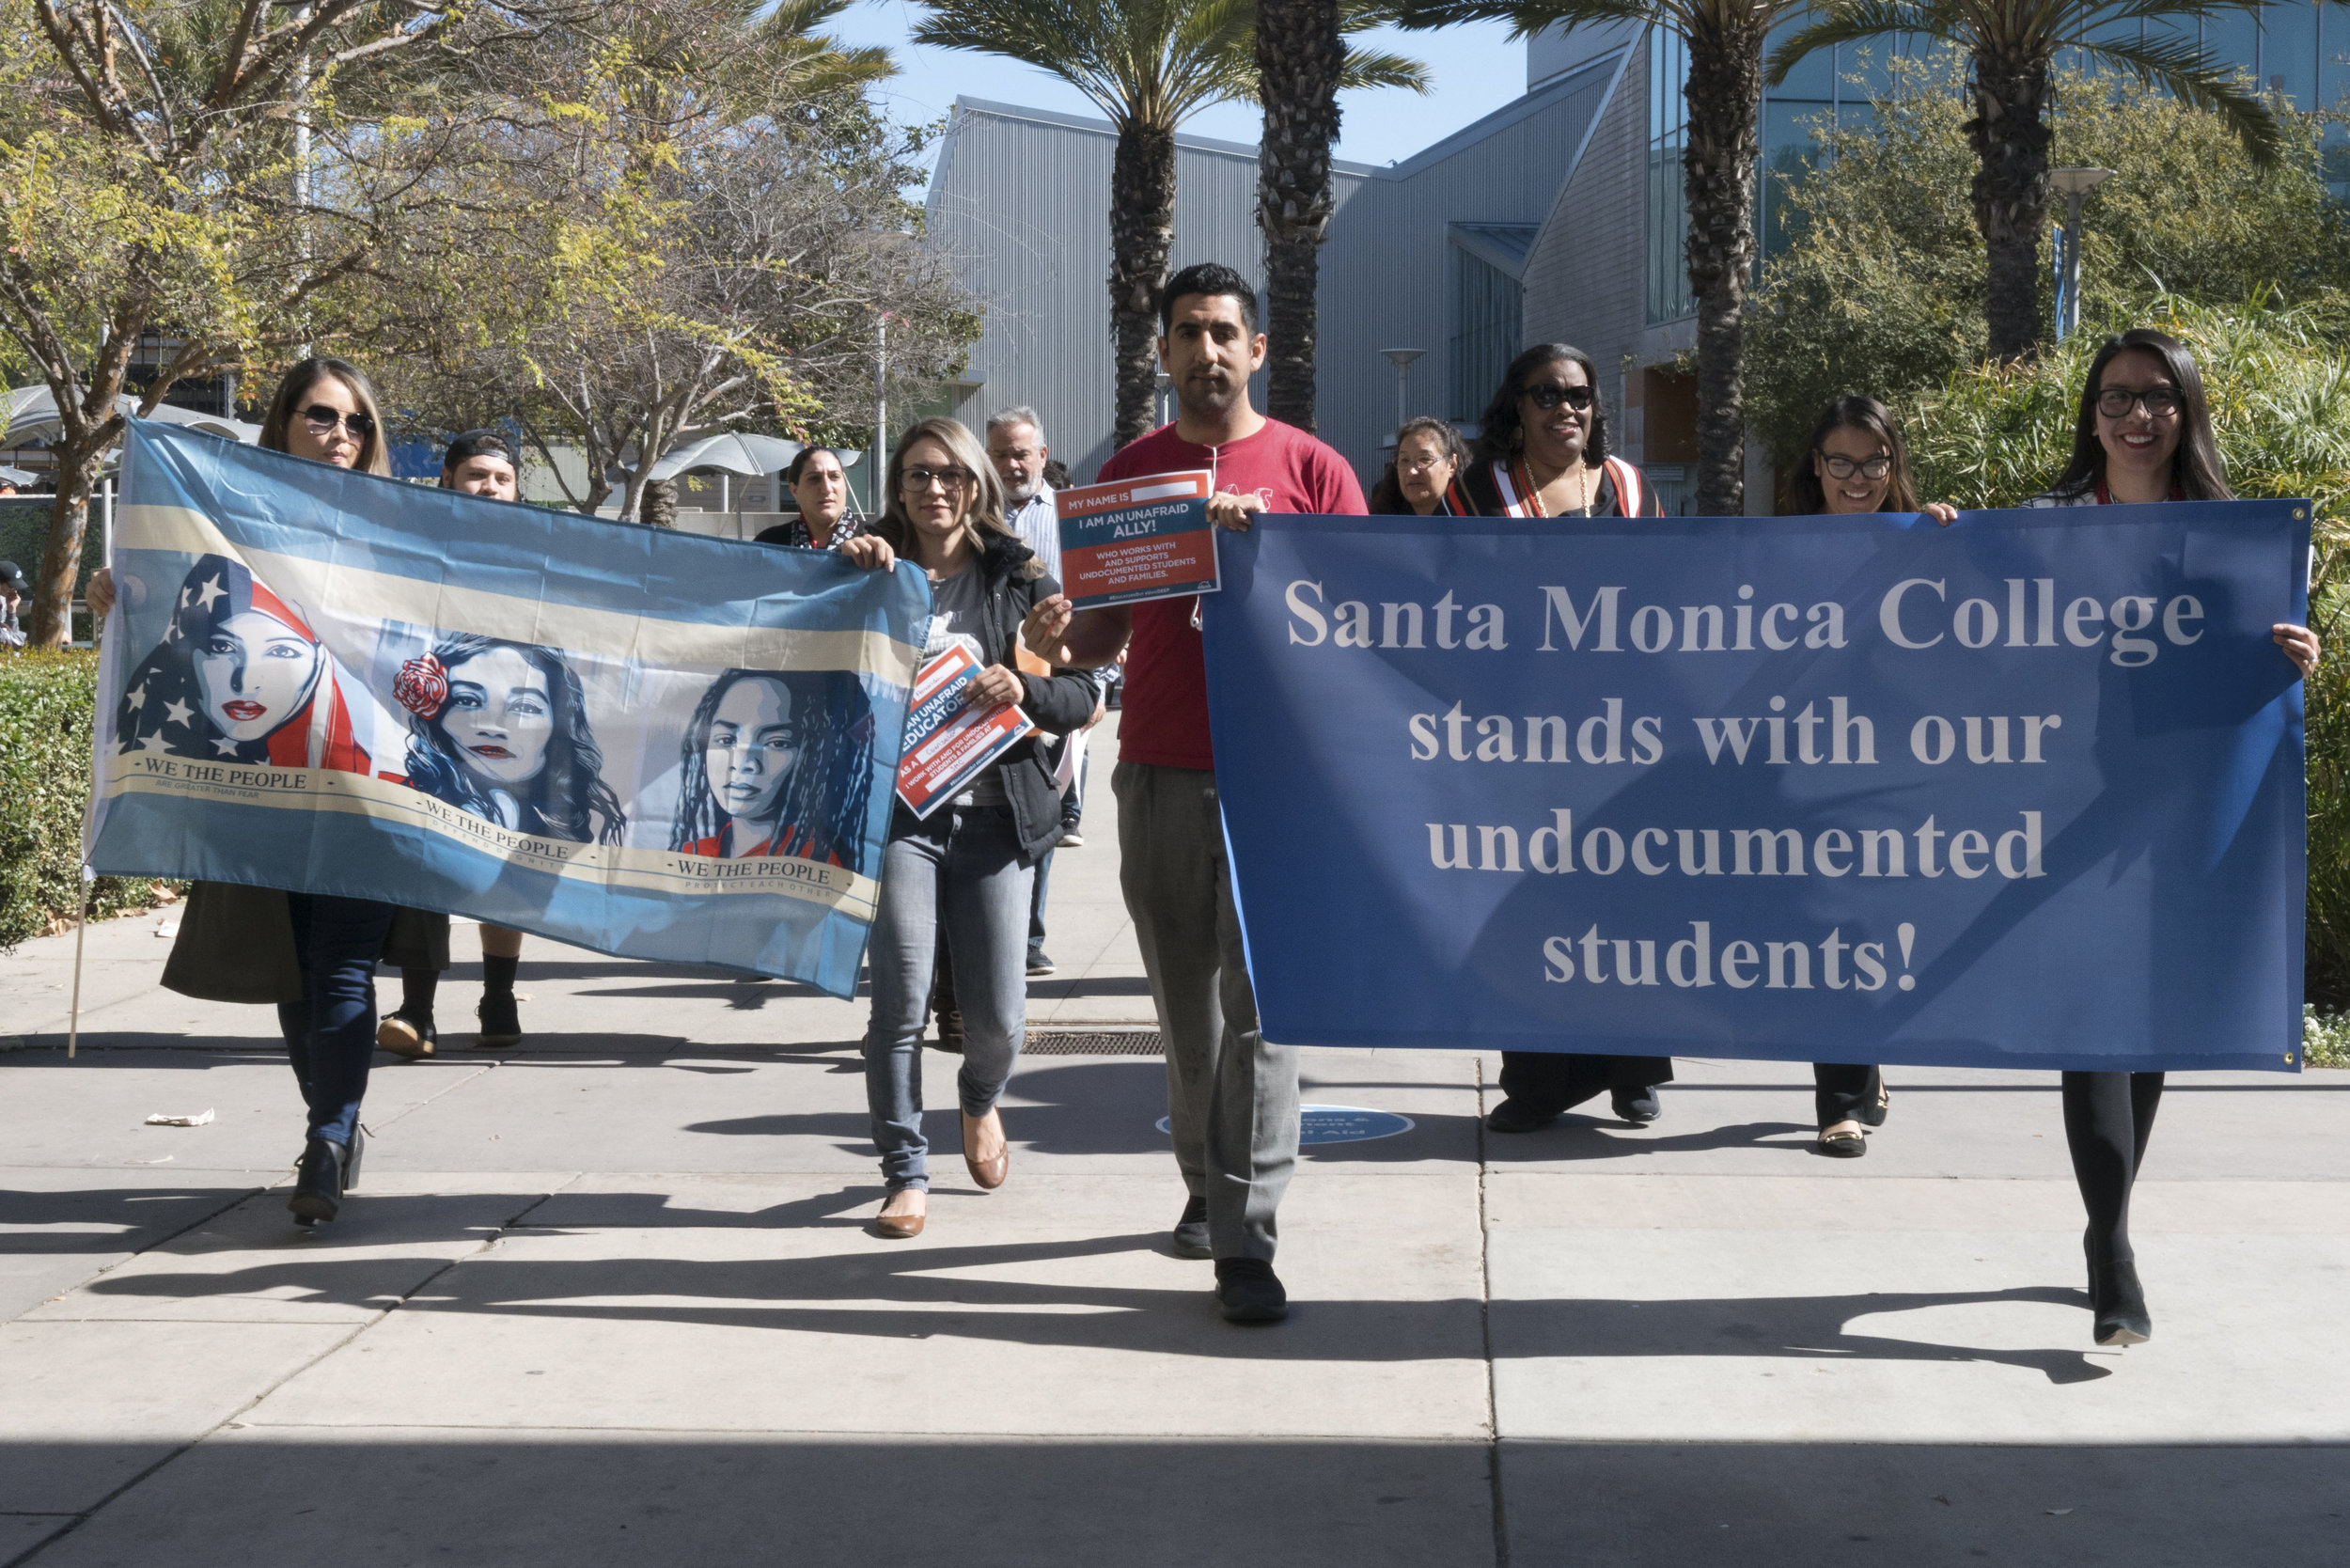 Santa Monica College students, faculty, and staff march on a DACA Day of Action gathering on Monday, March 5, 2018 at SMC's main campus in Santa Monica, Calif. The day marked the date the DACA program was set to expire; however, the DACA program is still in place due to injunctions issued by federal district courts in recent months. (Photo: Helena Sung)